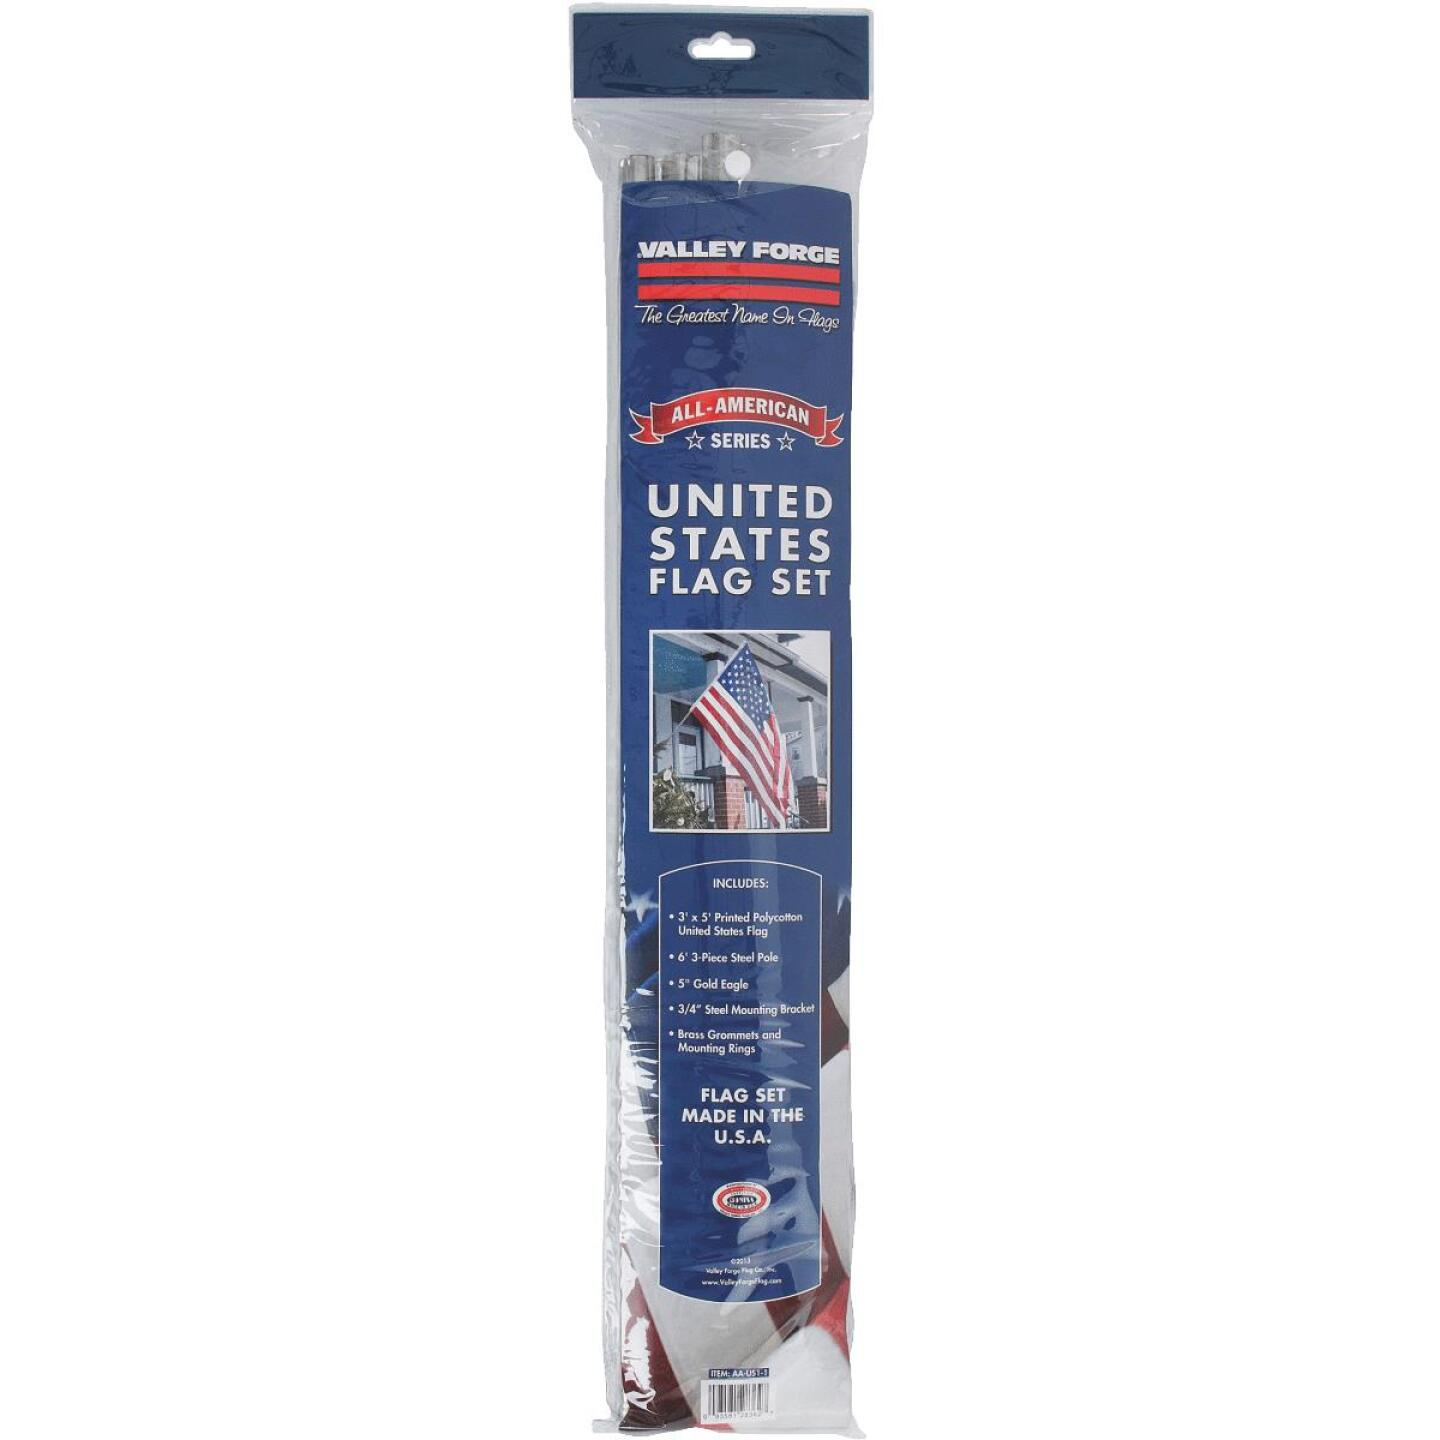 Valley Forge 3 Ft. x 5 Ft. Polycotton American Flag & 6 Ft. Pole Kit Image 2